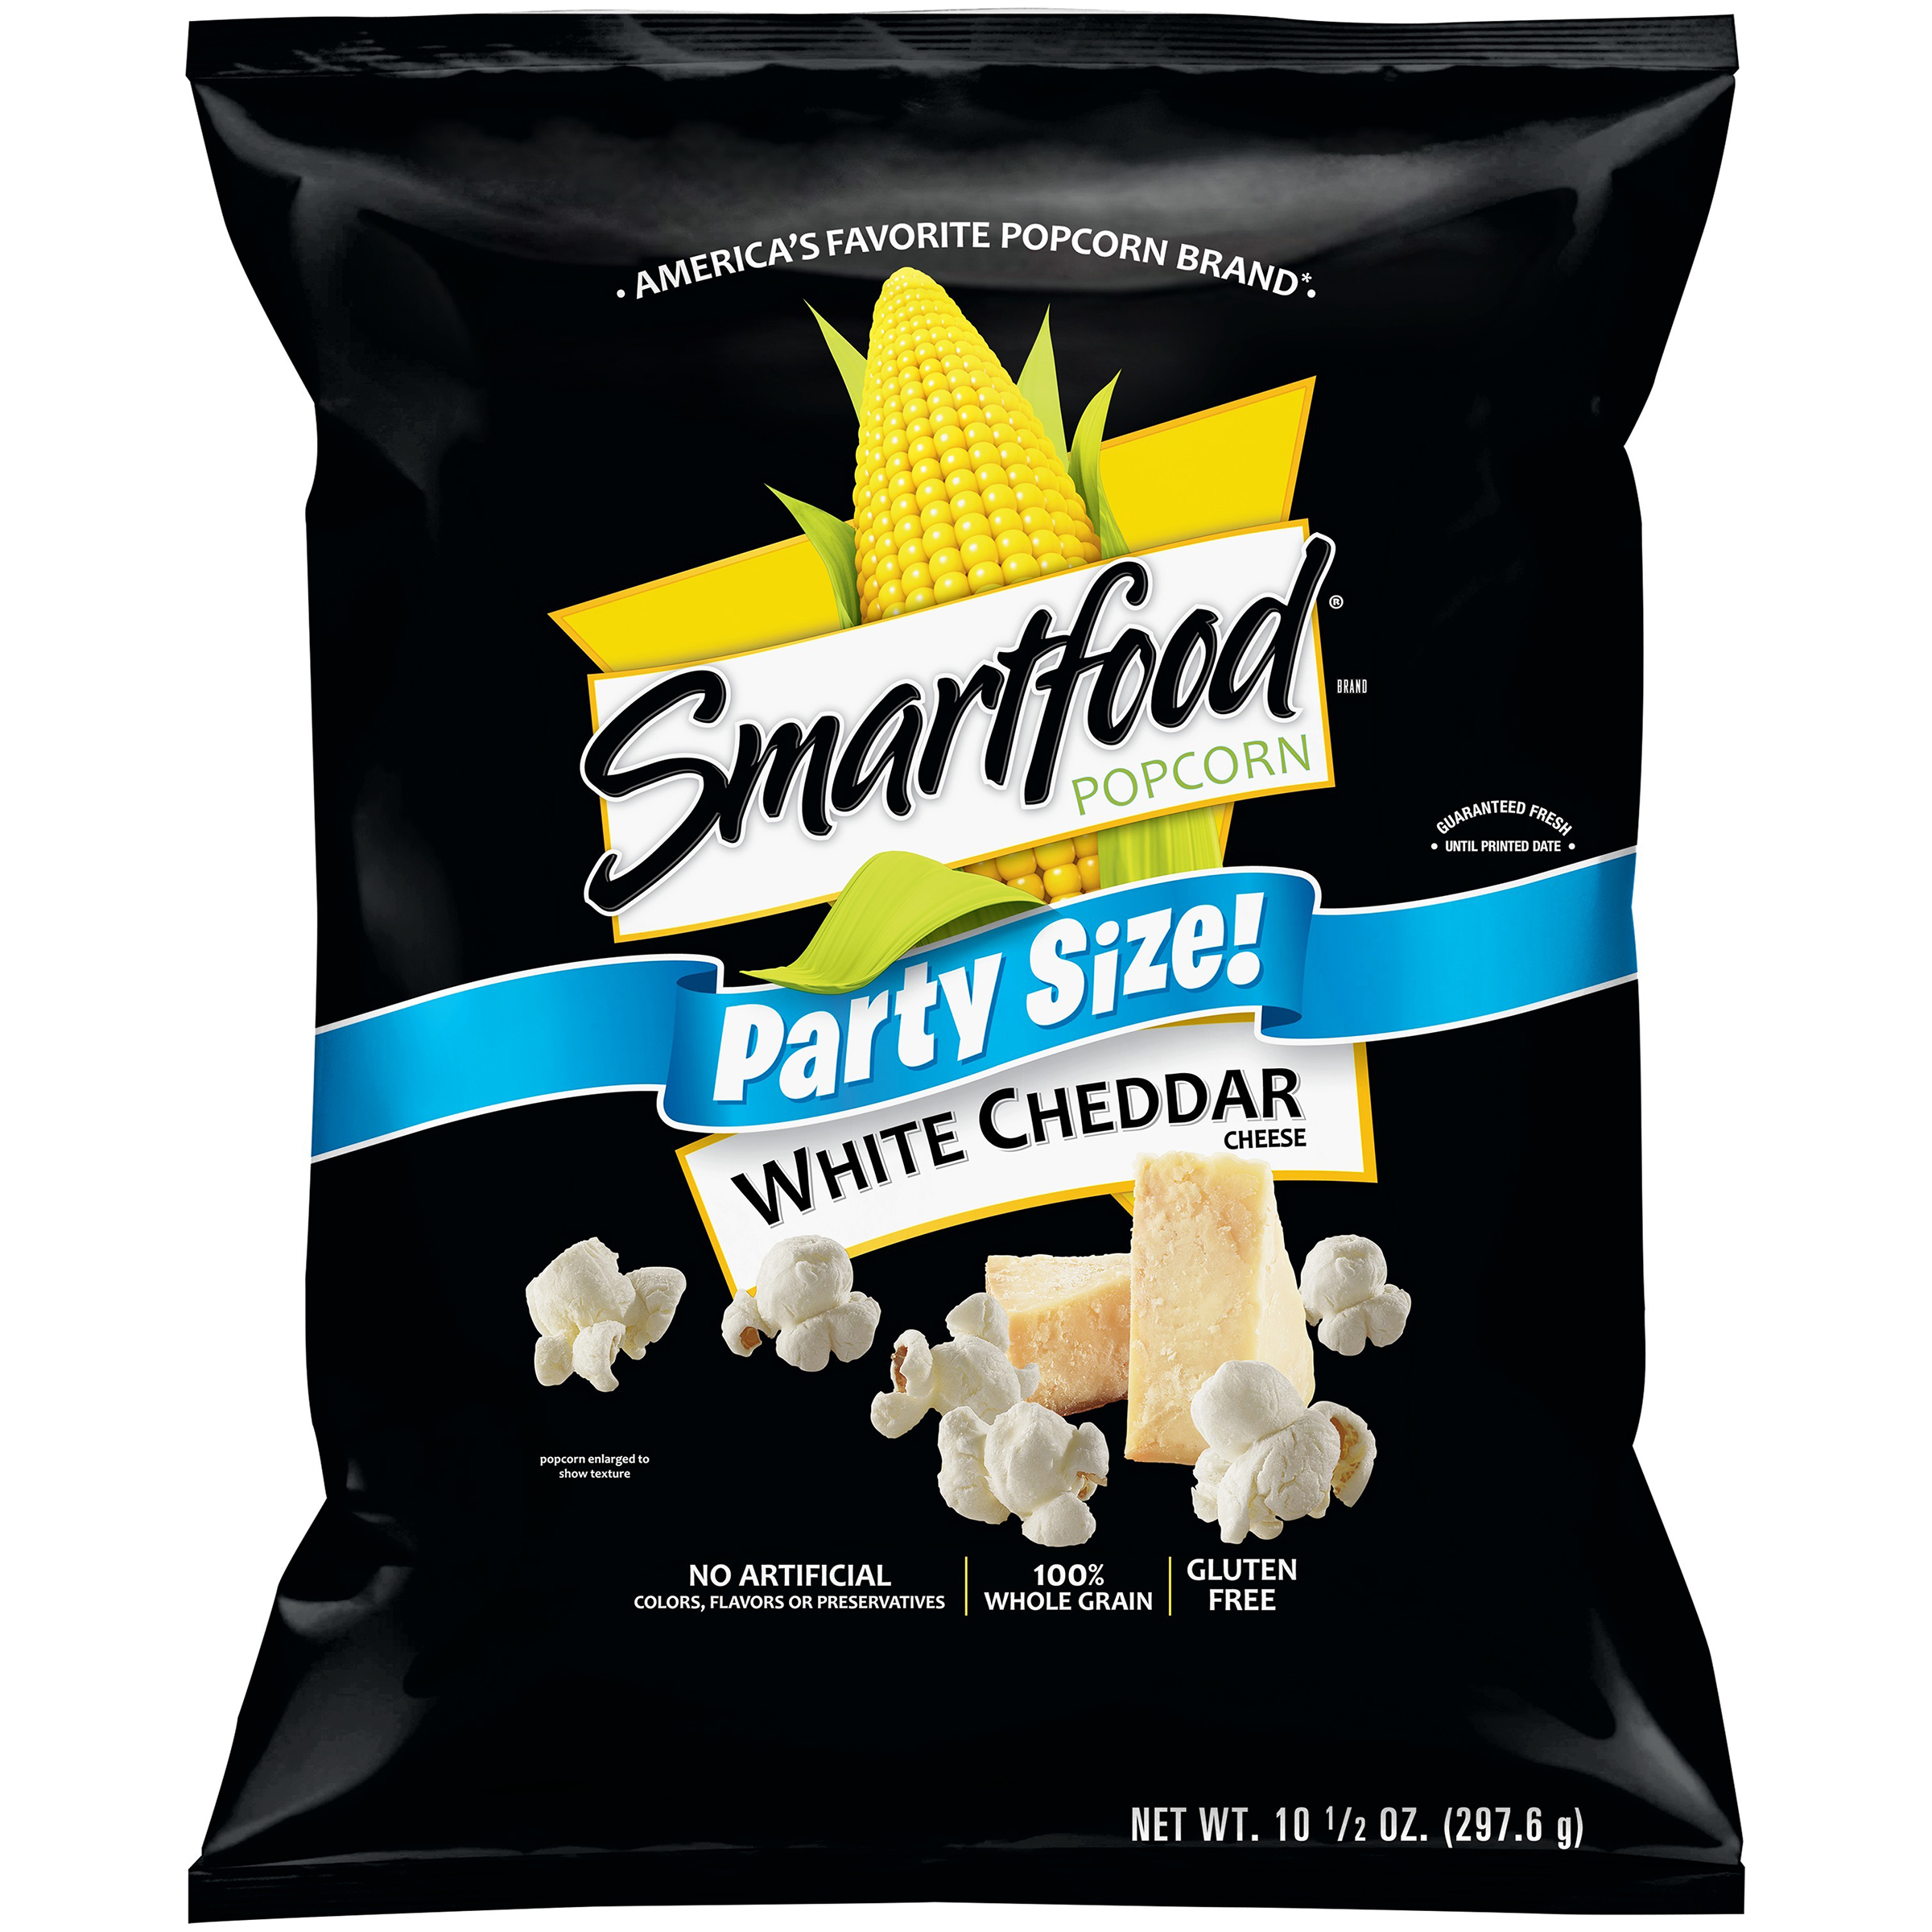 Smartfood White Cheddar Cheese Popcorn, Party Size, 10.5 oz. Bag